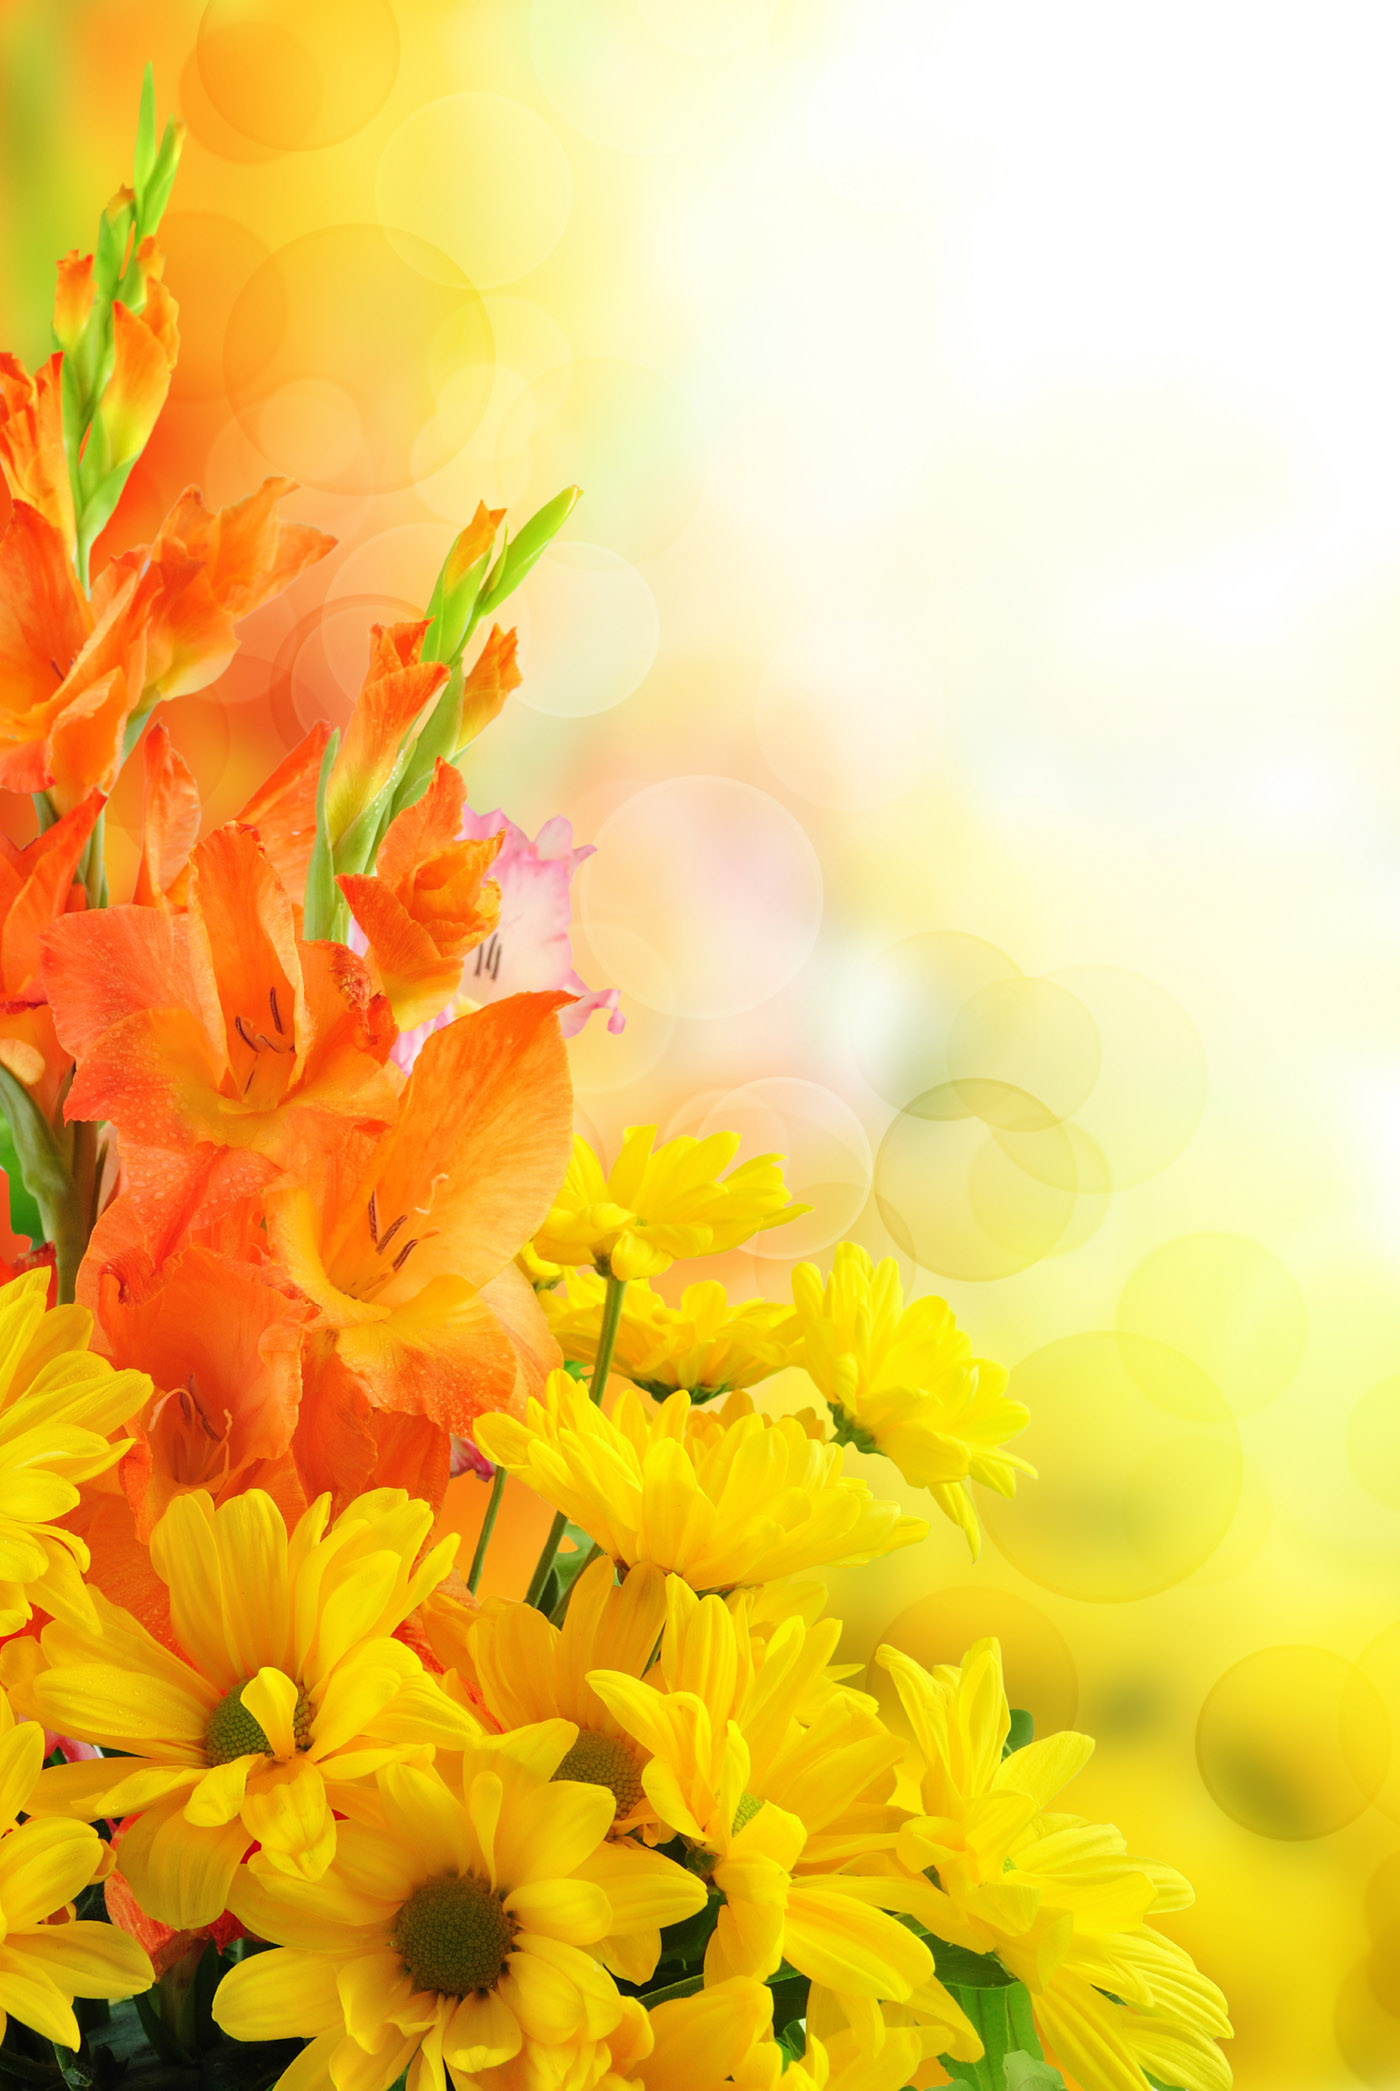 Floral background 31055 - Flower Wallpapers - Flowers